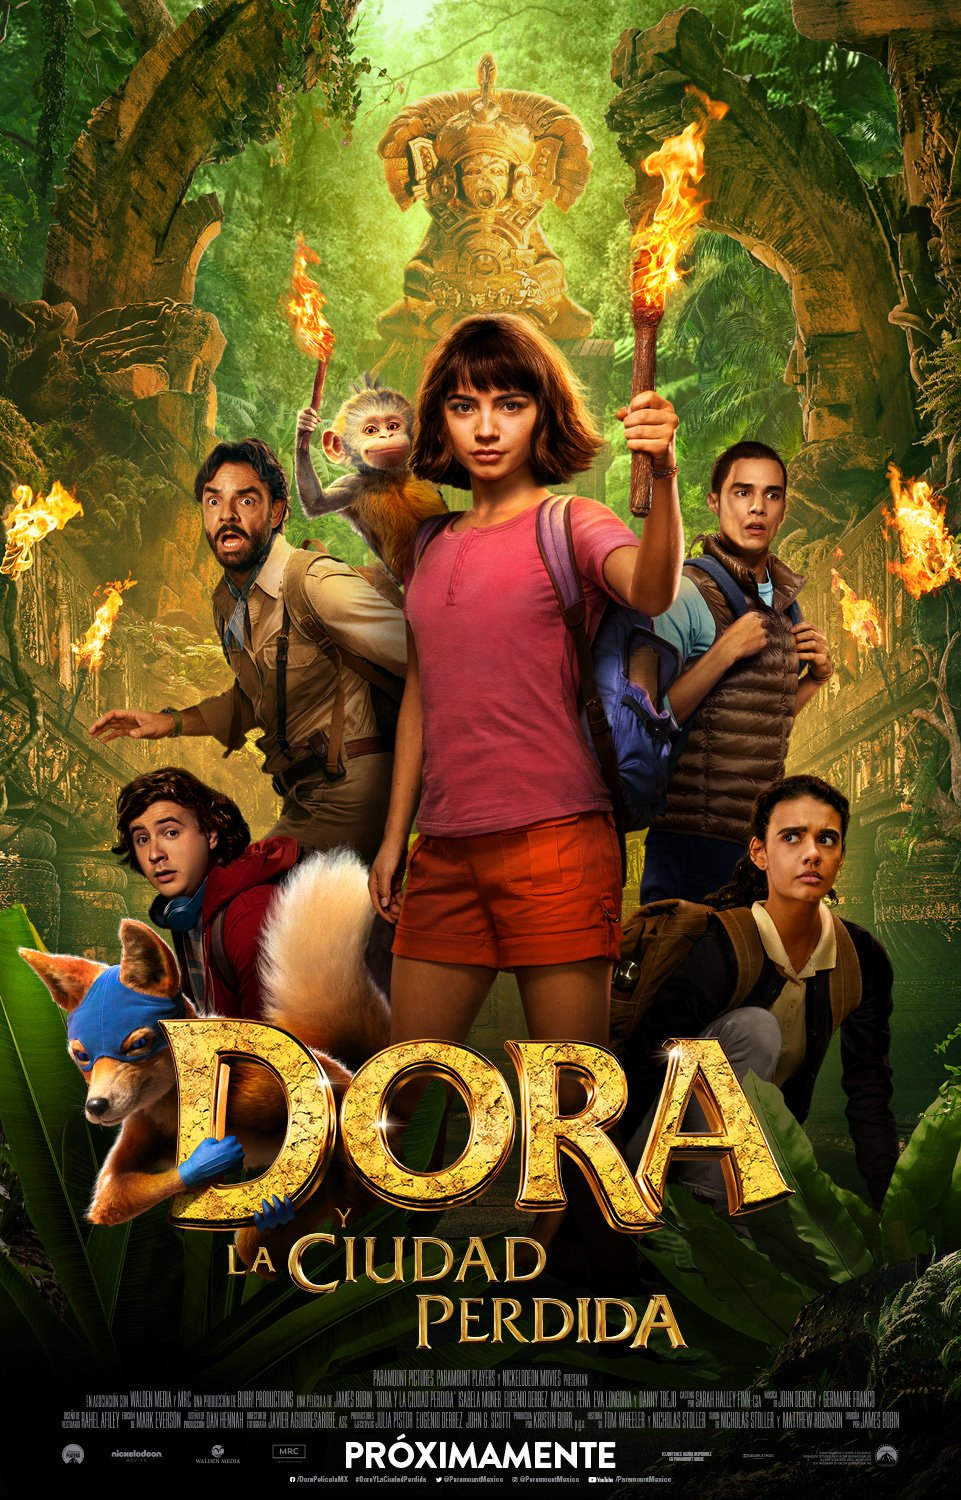 Póster de Dora and the Lost City of Gold (2019). Imagen: Pramount Pictures Mexico Twitter (@ParamountMexico).